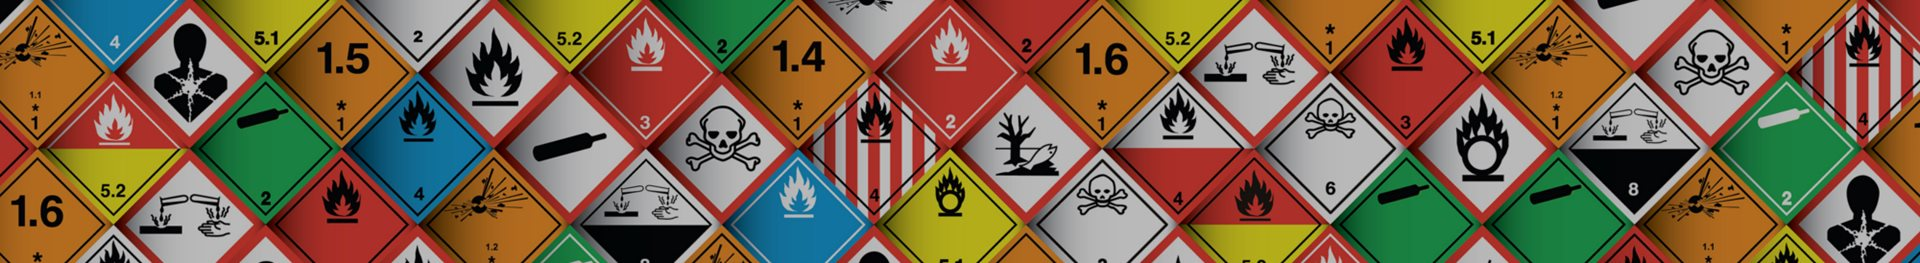 Hazmat 2014 workshops and scenarios